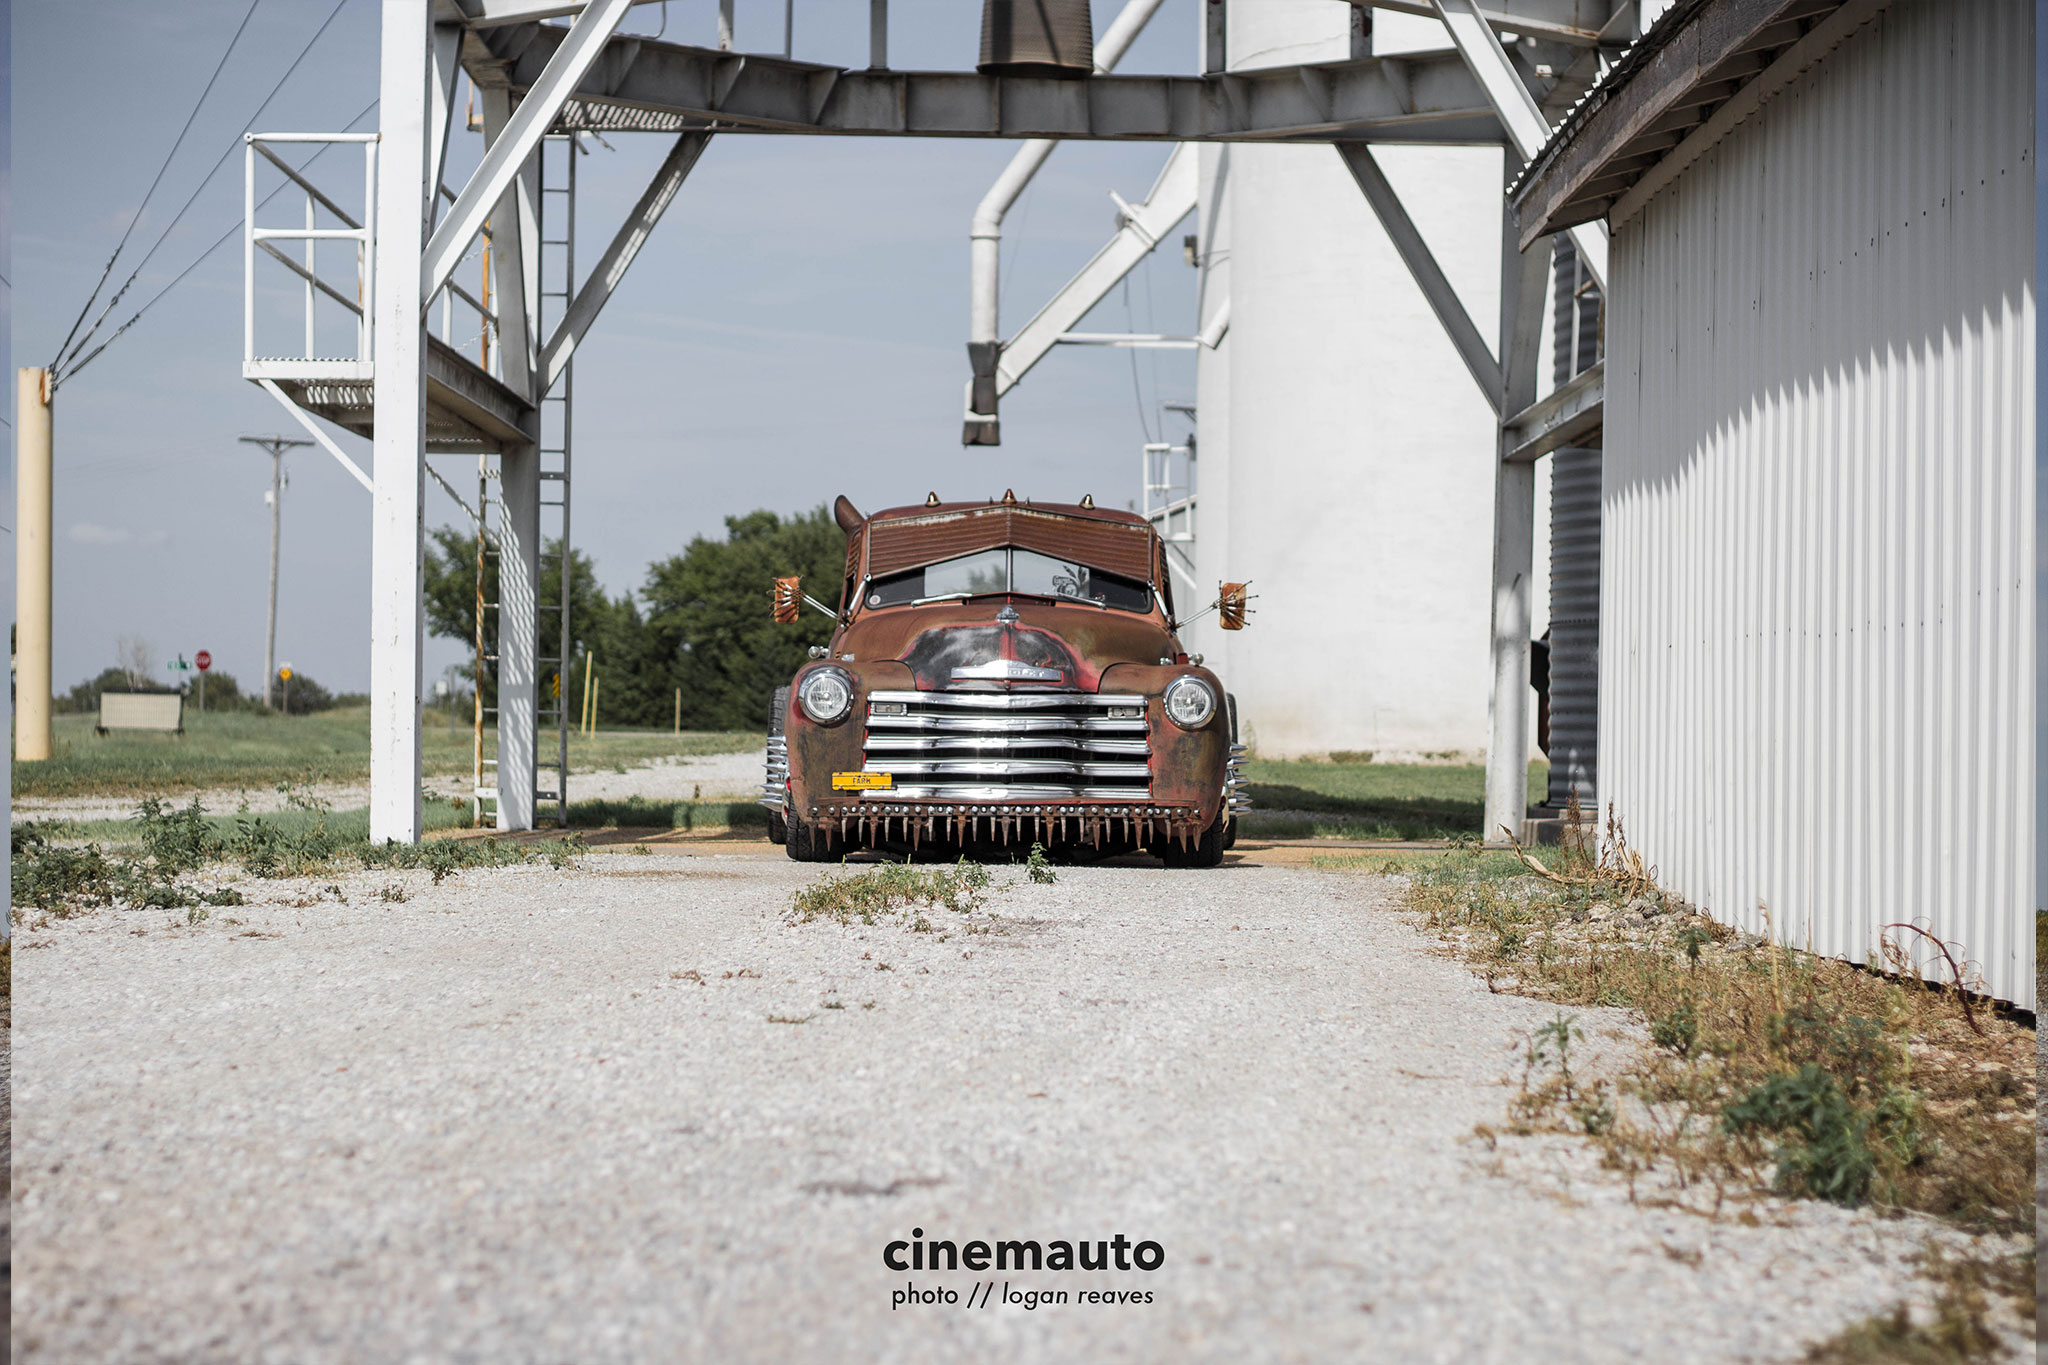 rattruck_cinemauto6.jpg